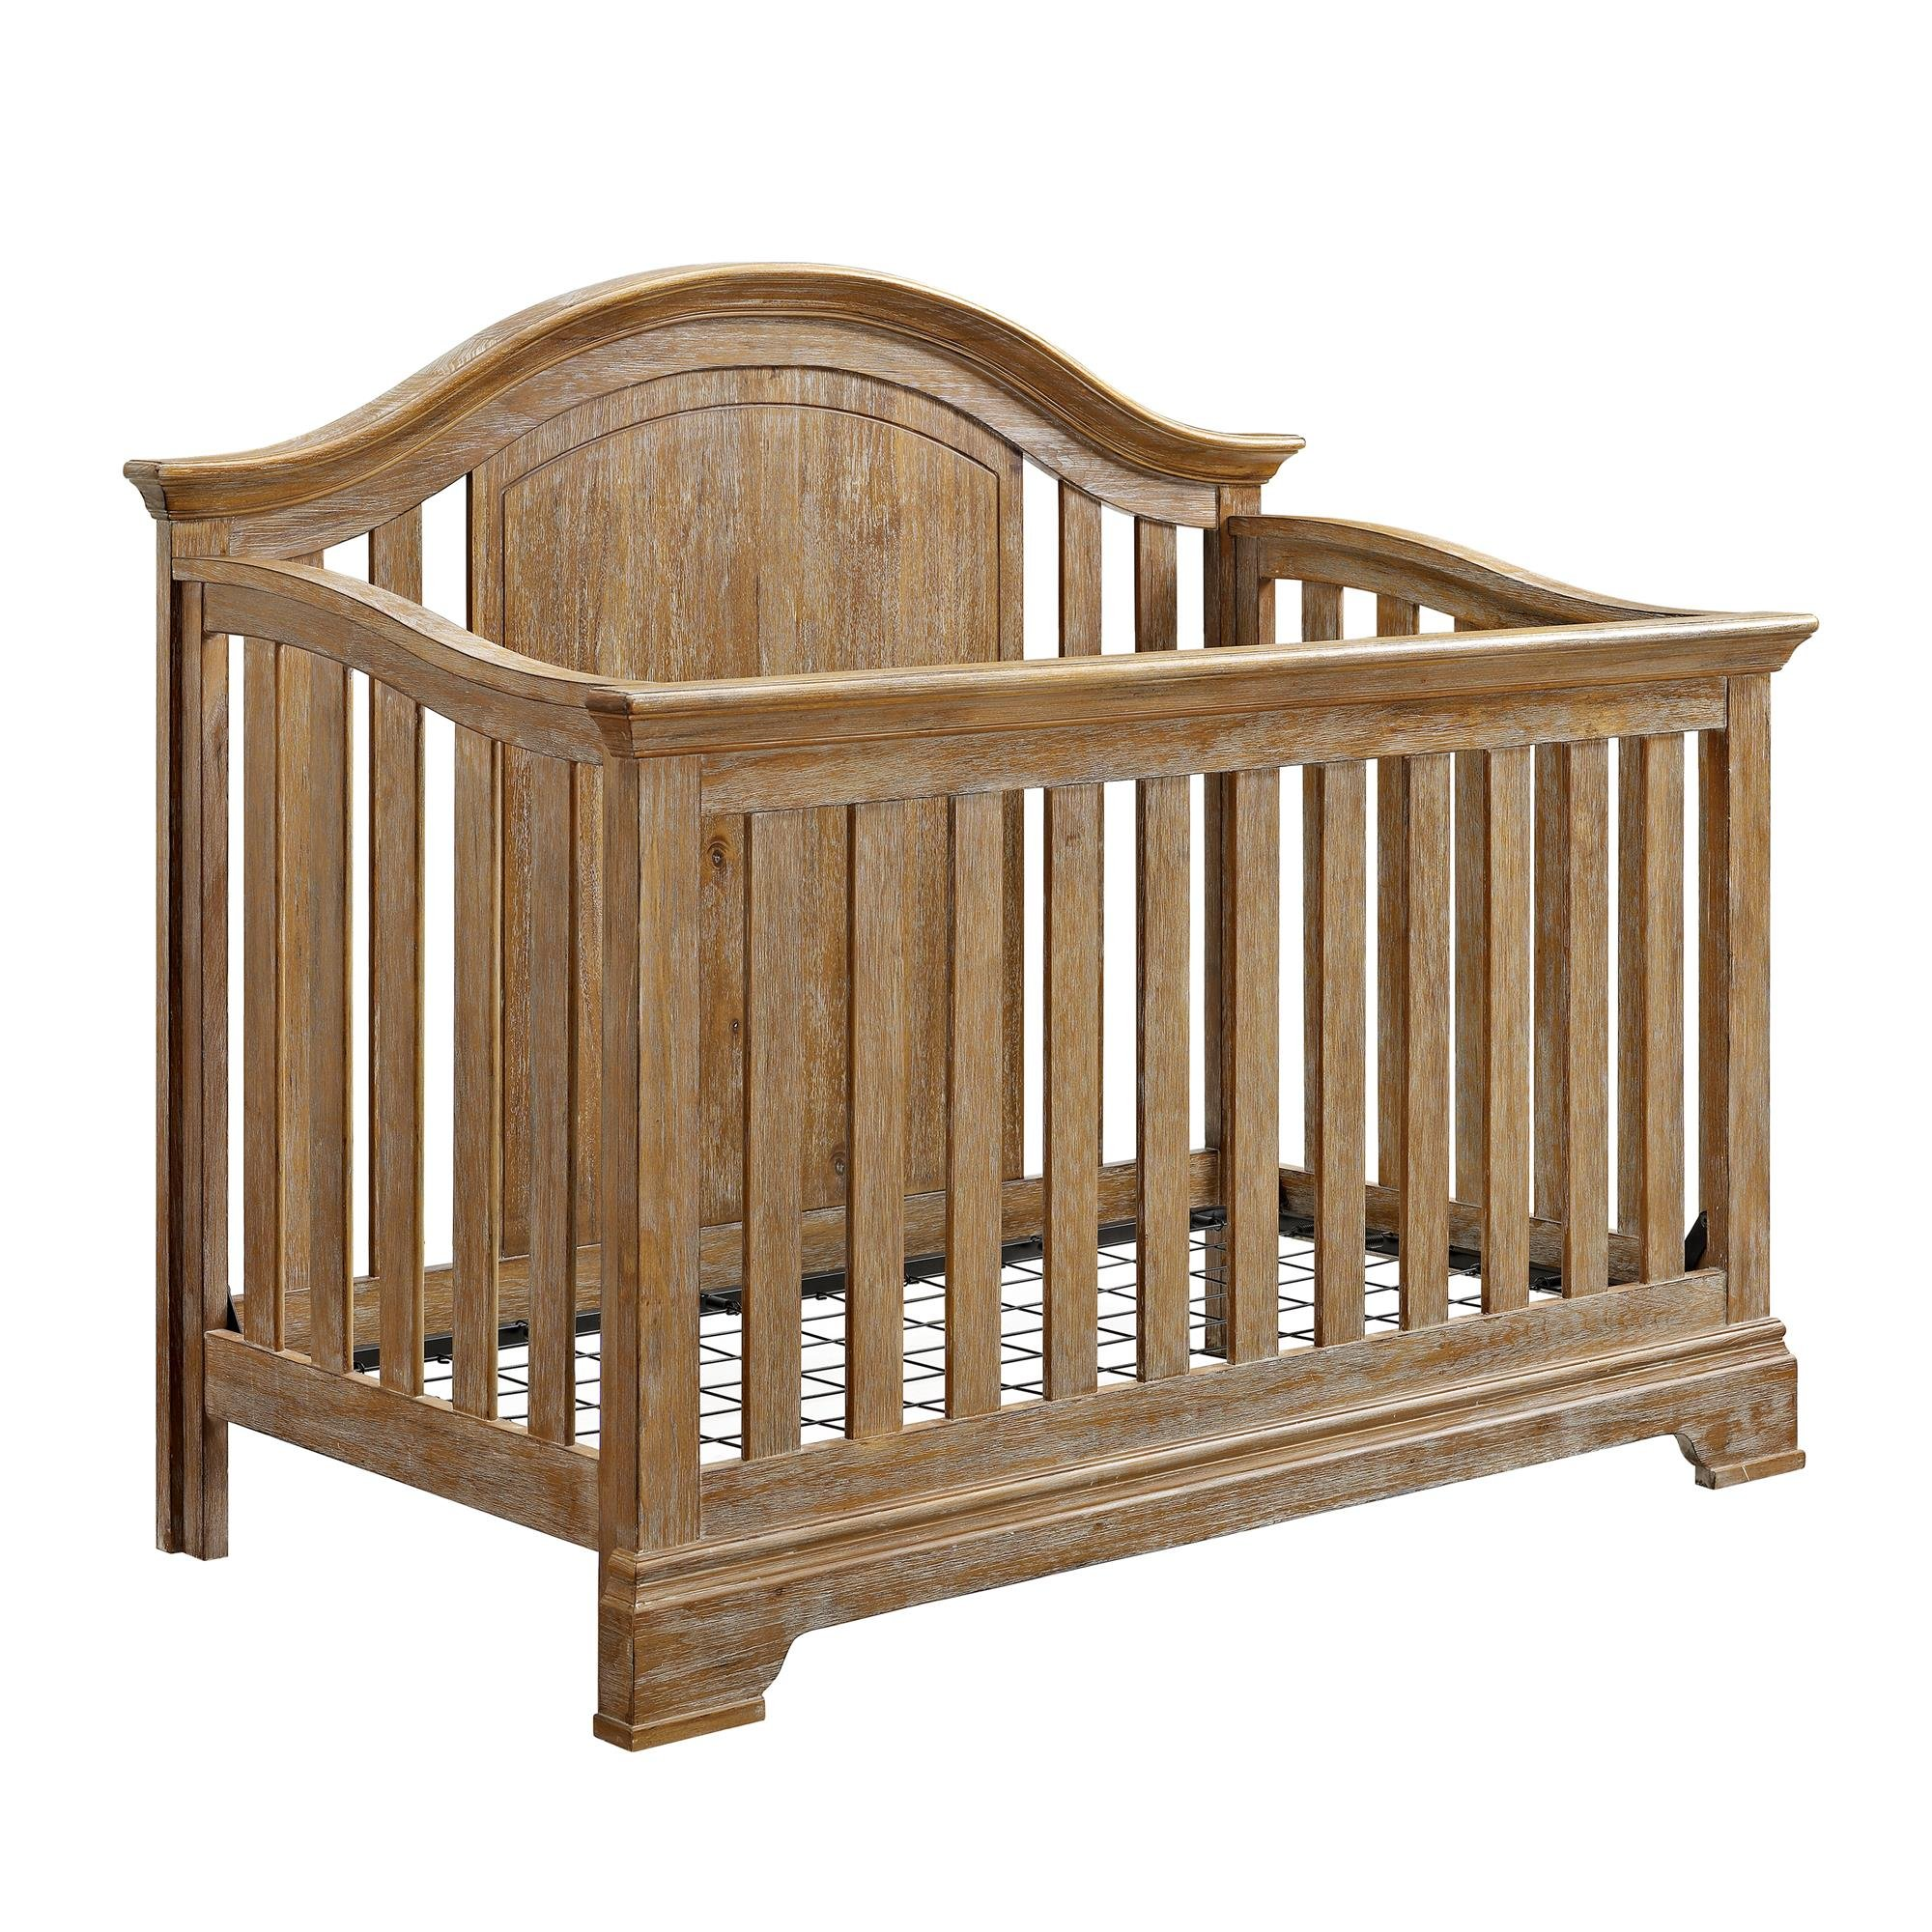 Baby Relax Macy 4-in-1 Convertible Crib, Natural Rustic by Baby Relax